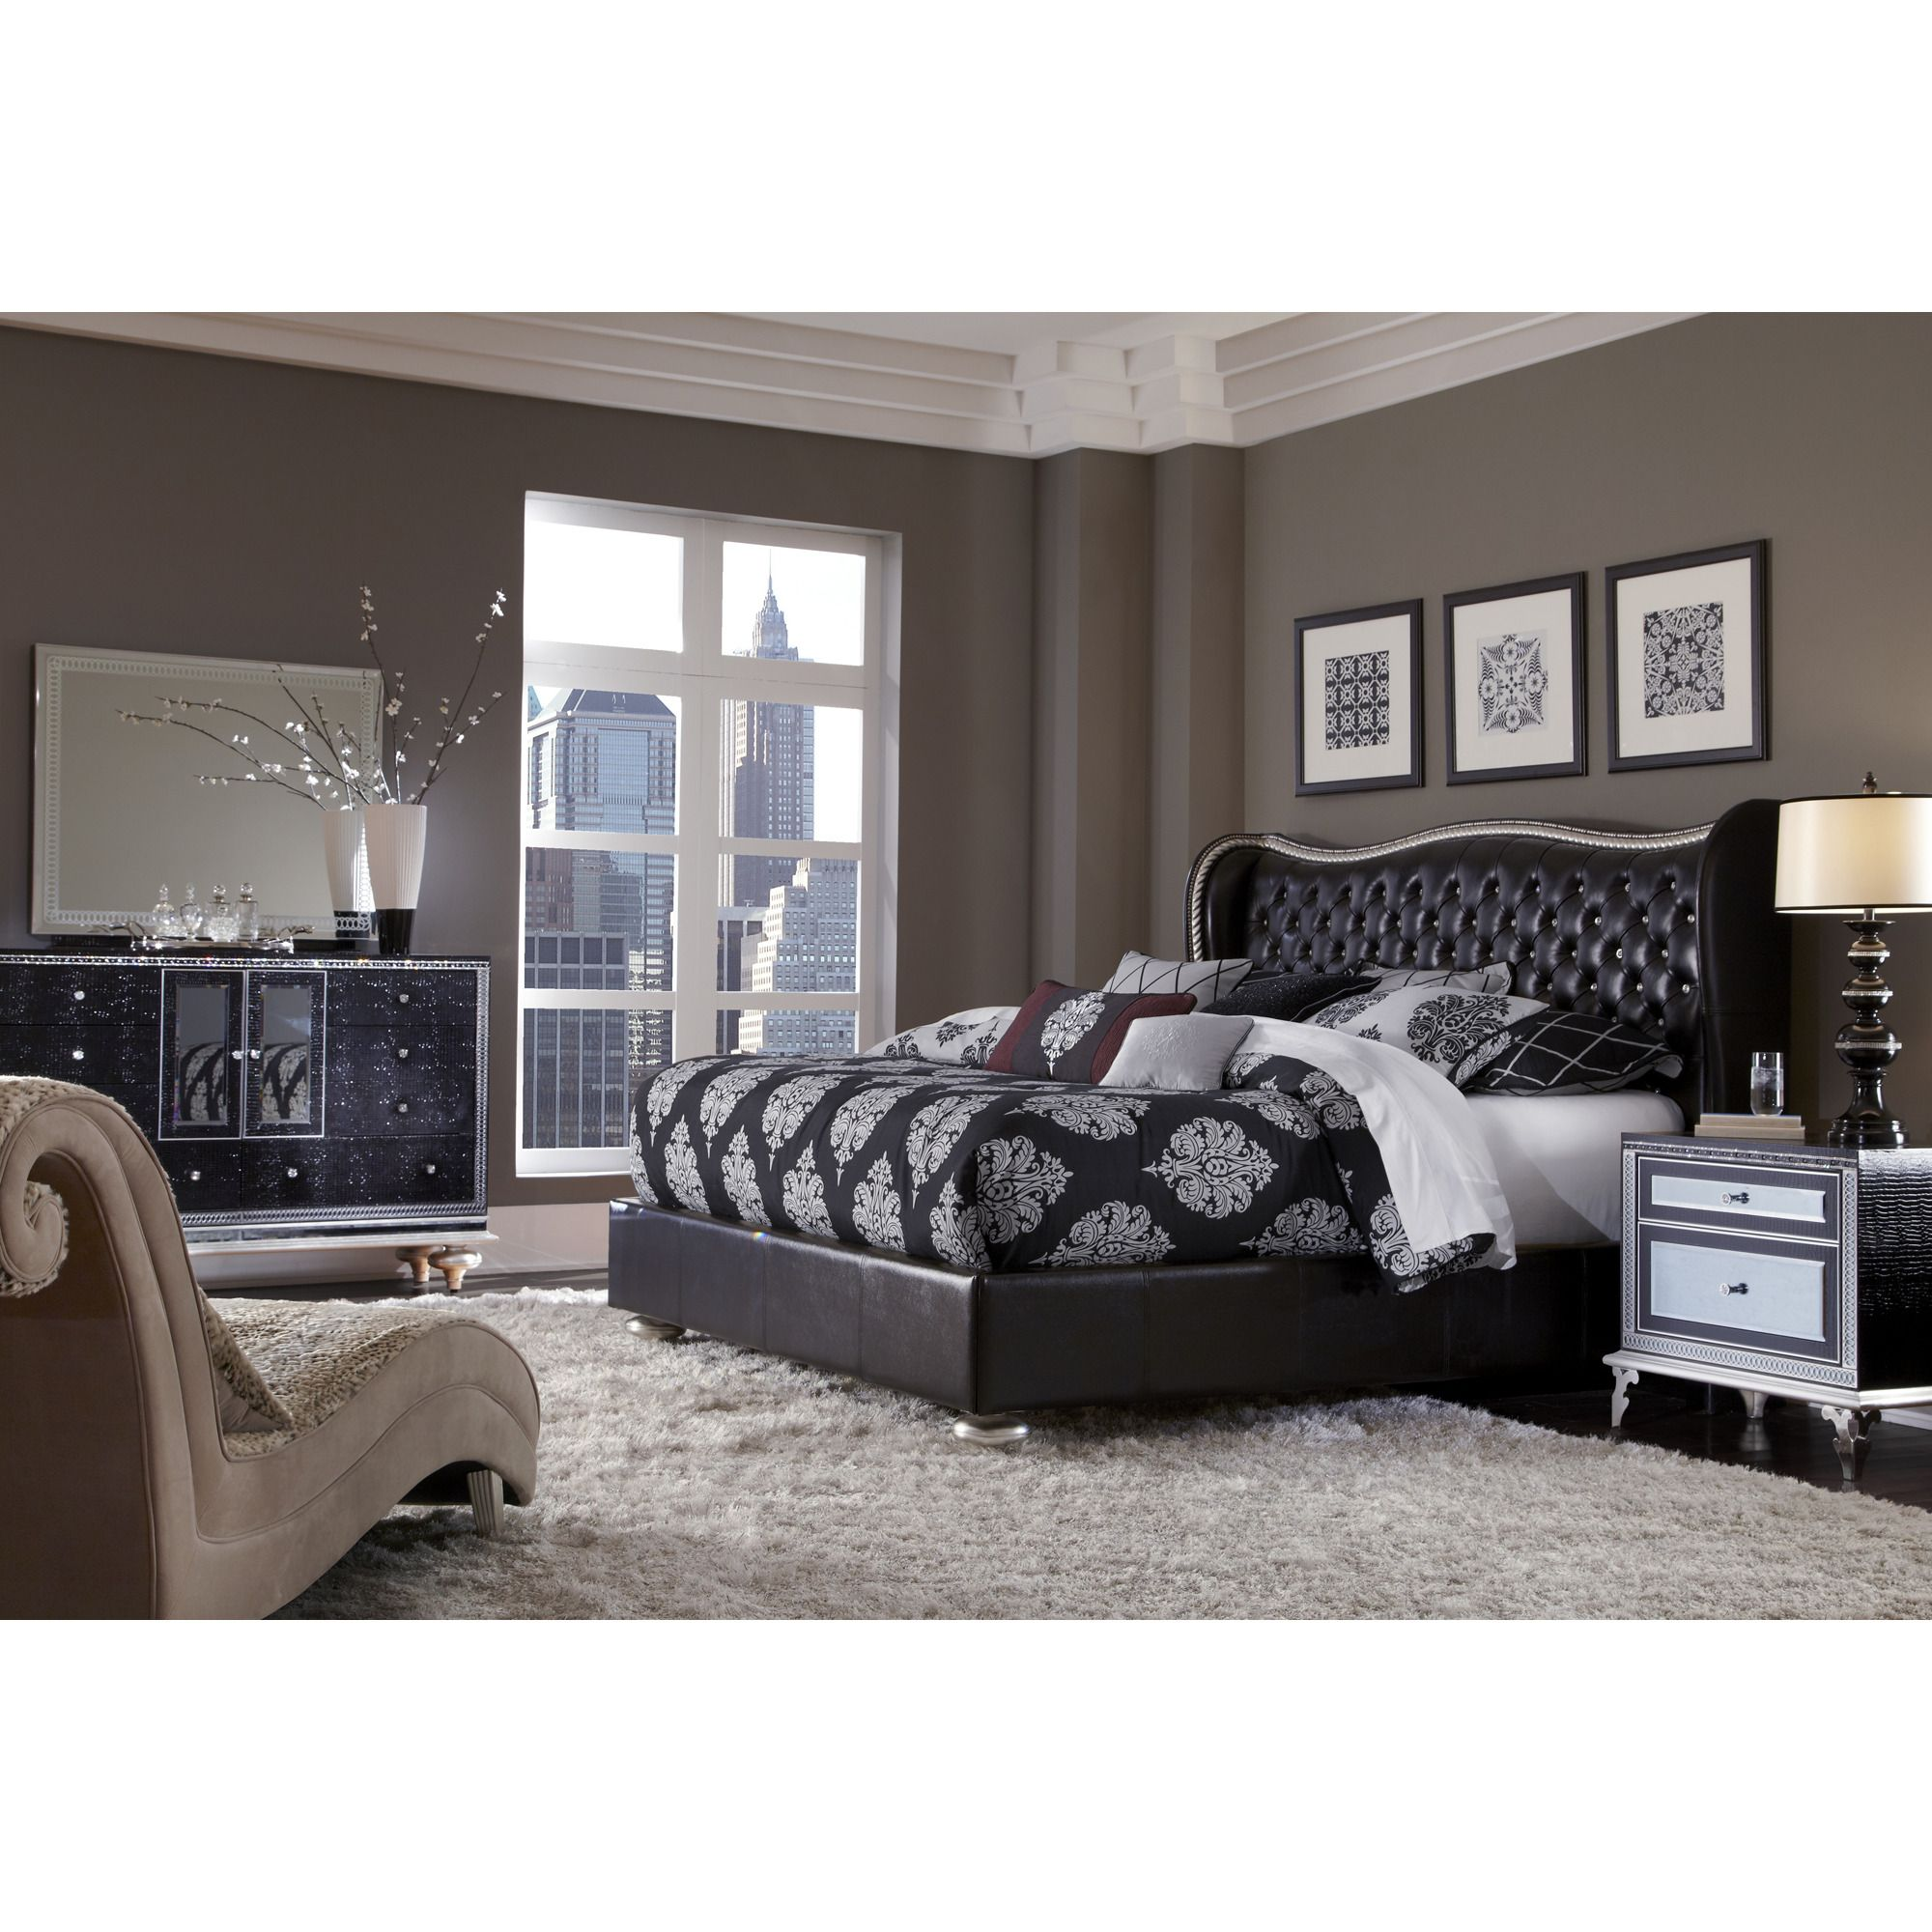 home bedroom collection swank hollywood jessica boutique drew house mcclintock american set furniture design the